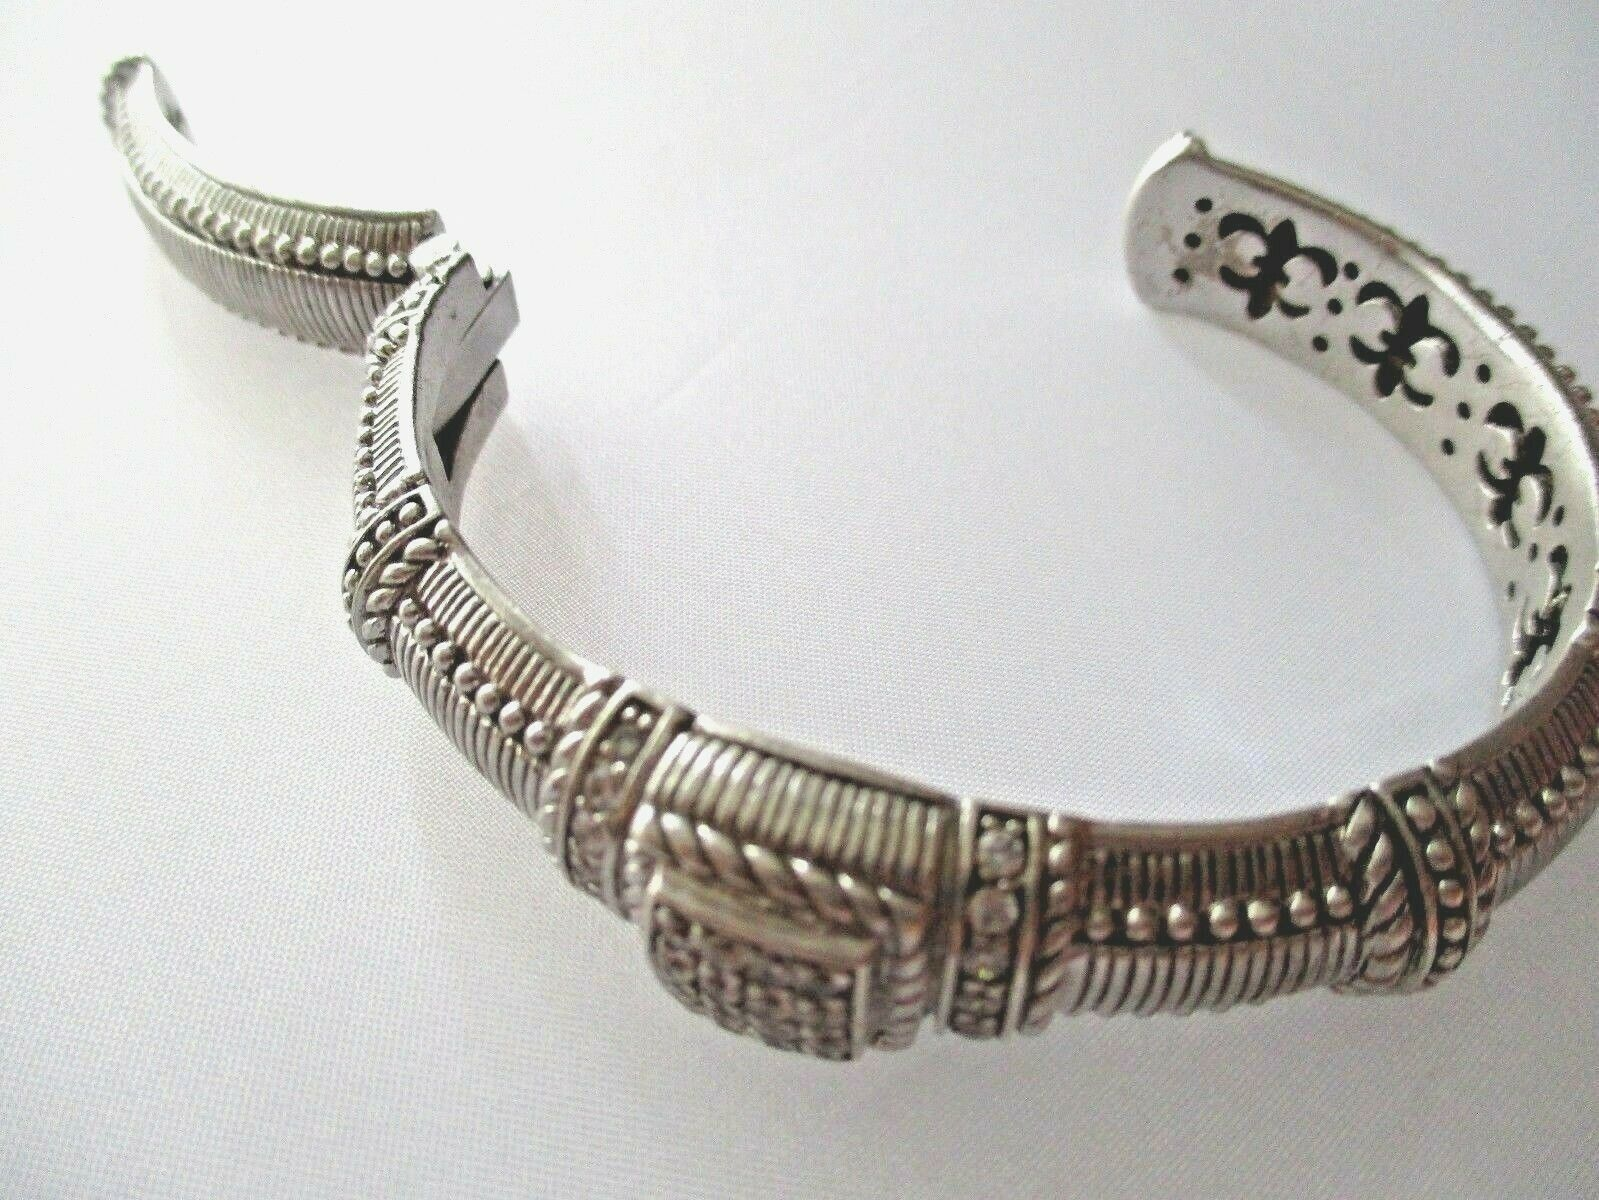 JUDITH RIPKA STERLING SILVER DIAMONIQUE CABLE CUFF BRACELET JR BOX & POUCH AVGE